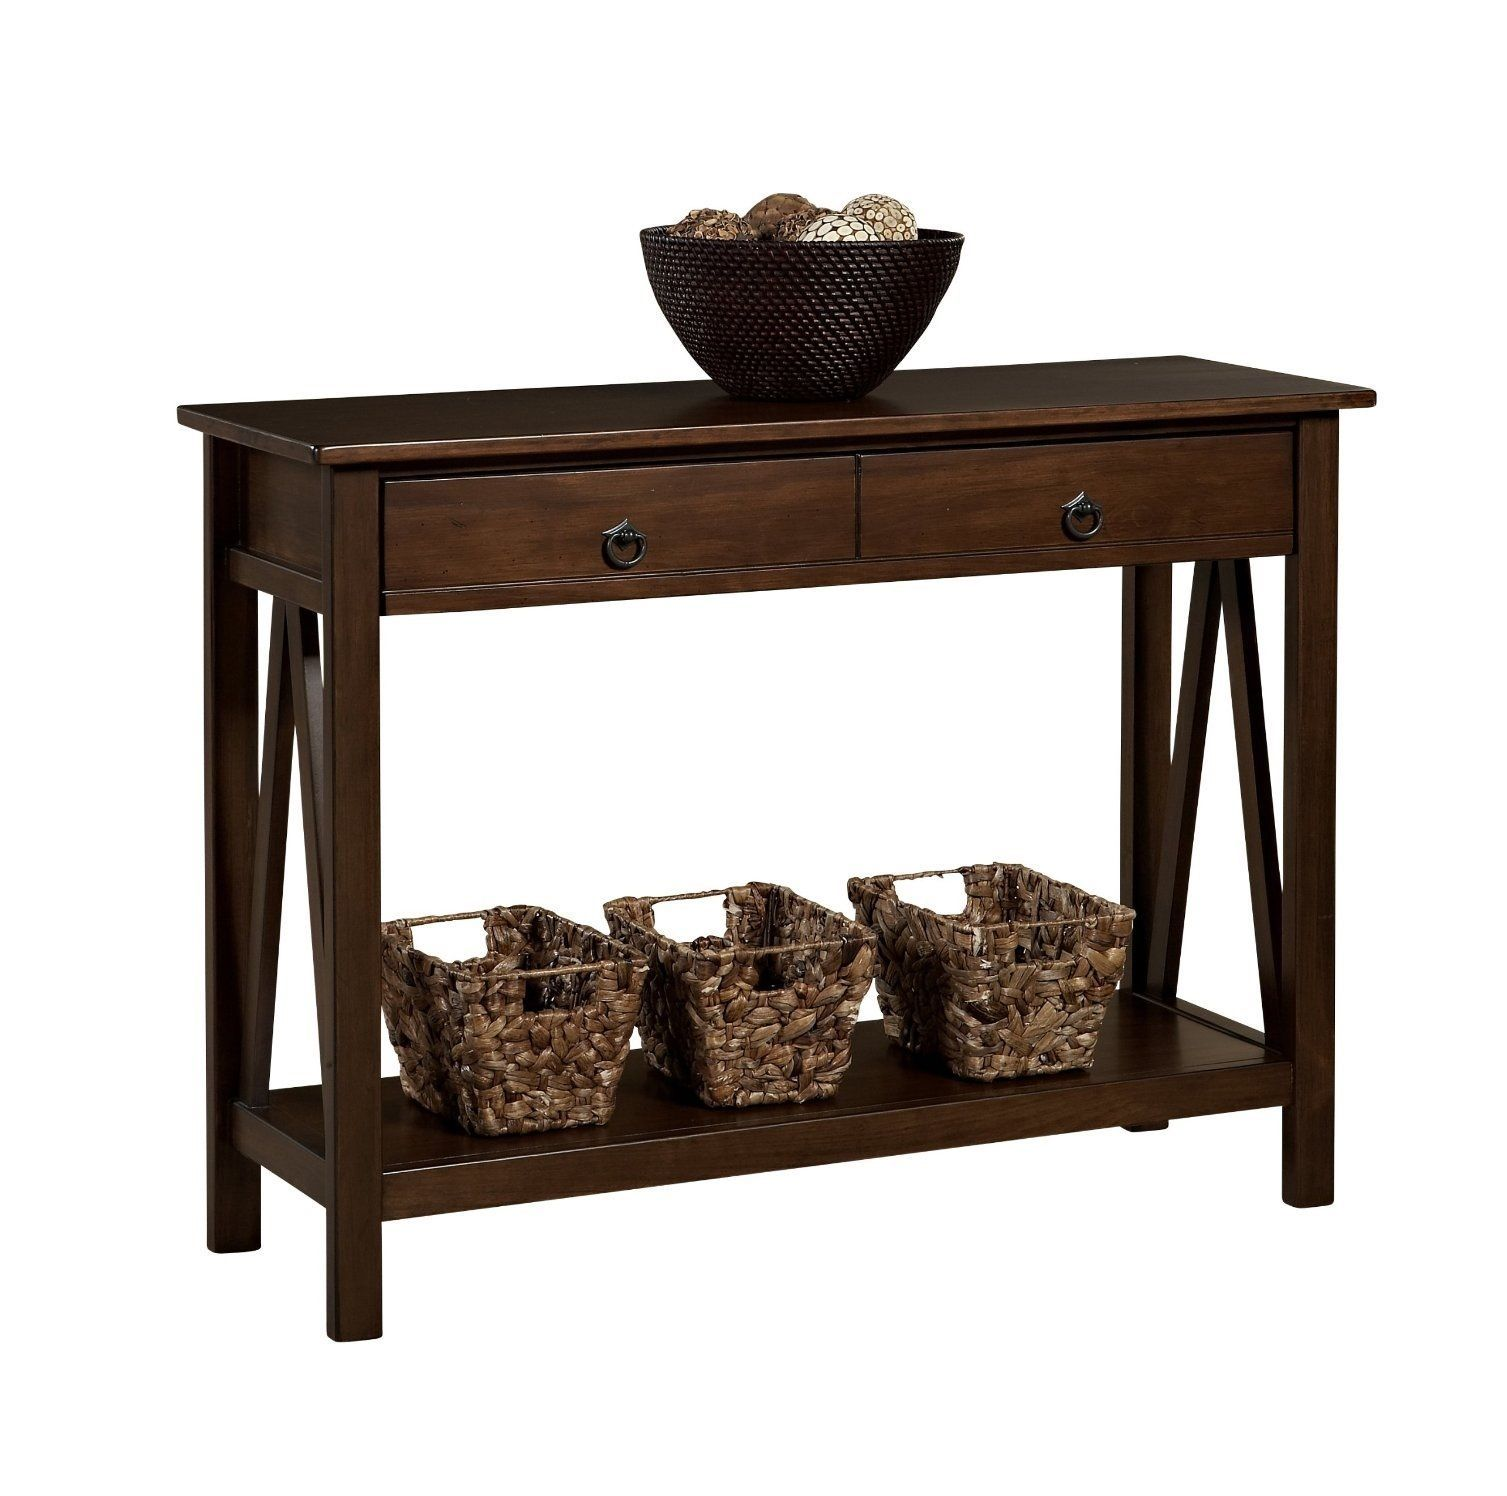 Home classic console table antique modern style decor Console tables with storage